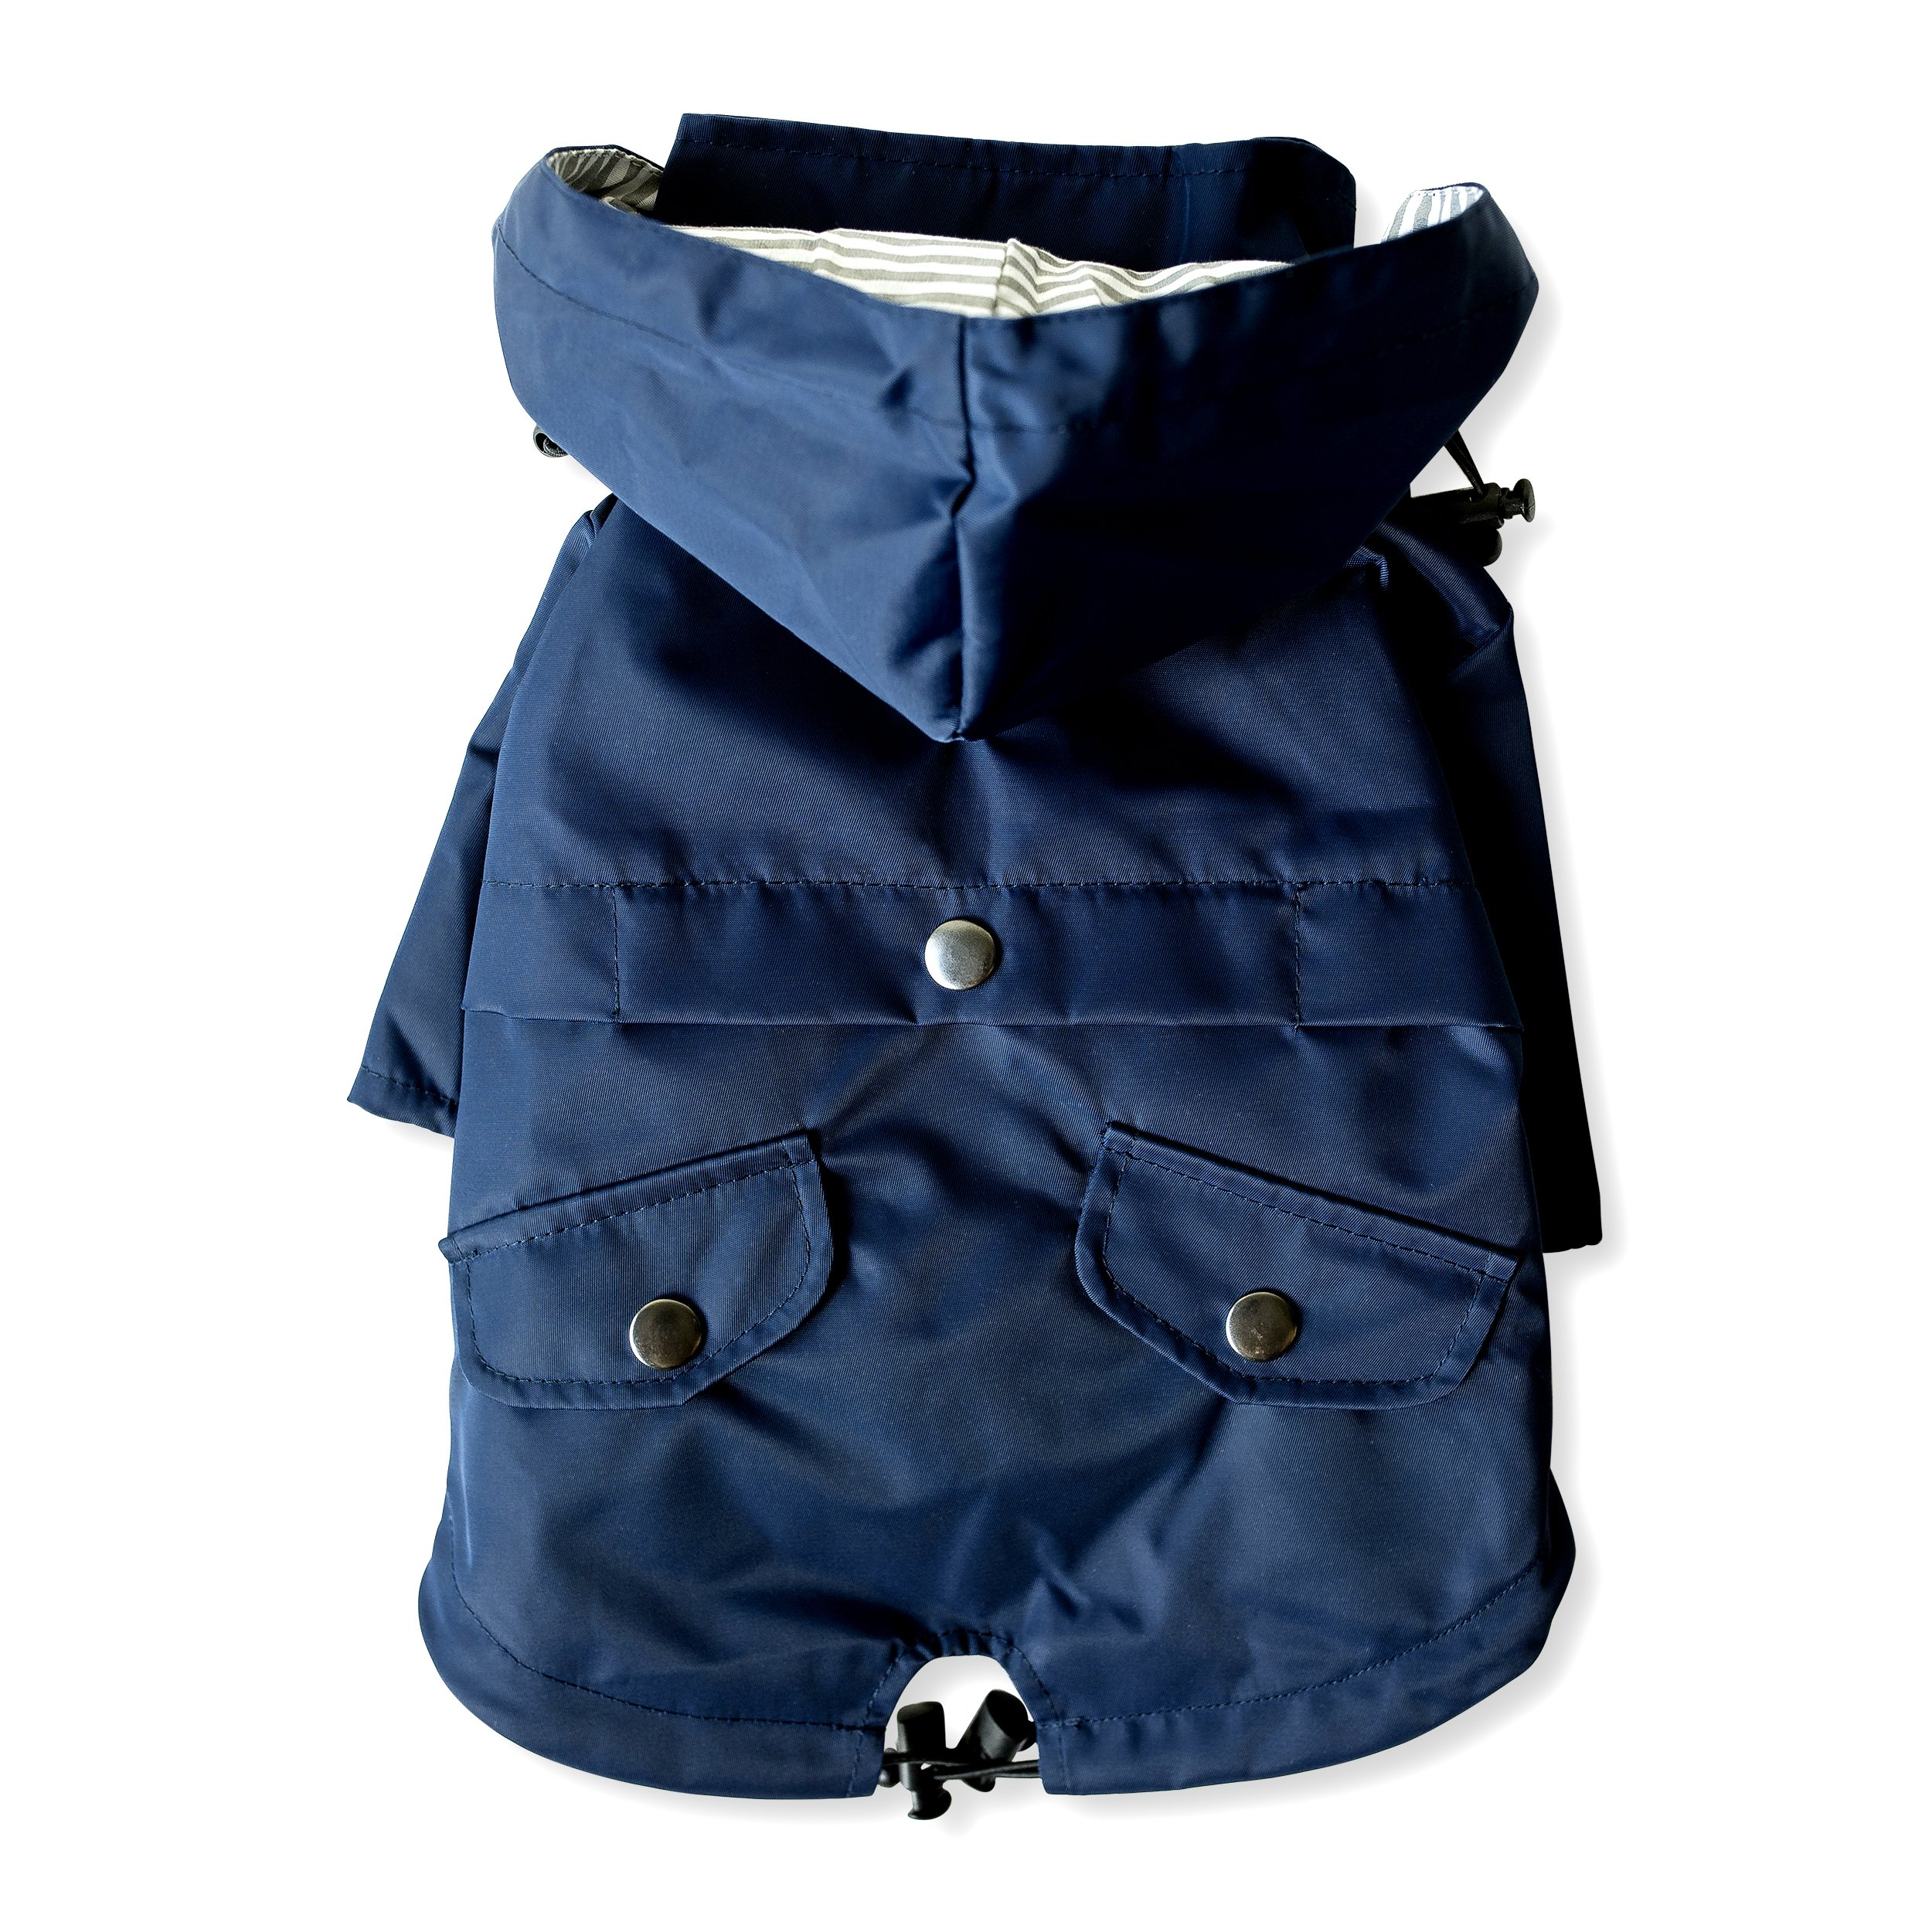 Navy Blue Zip Up Dog Raincoat with Reflective Buttons, Pockets, Rain/Water Resistant, Adjustable Drawstring, Removable Hood - Size XS to XXL Available - Stylish Premium Dog Raincoats by Ellie (S) by Ellie Dog Wear (Image #2)